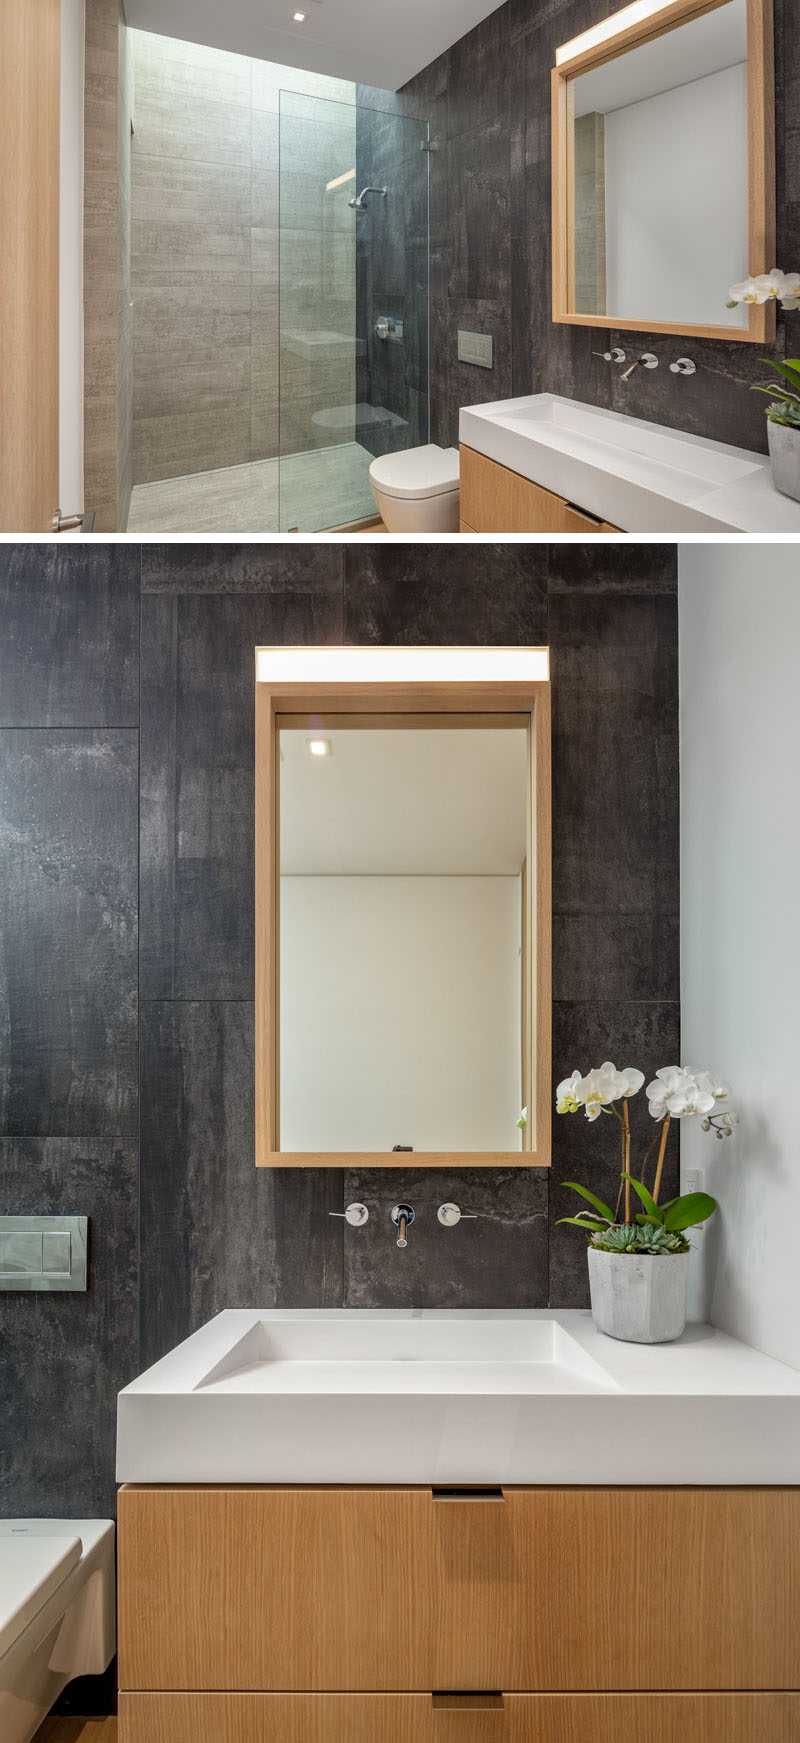 Bathroom Ideas - In this modern bathroom, a skylight adds natural light to the shower, and a wood vanity with matching mirror adds a natural touch. #BathroomIdeas #ModernBathroom #WoodVanity